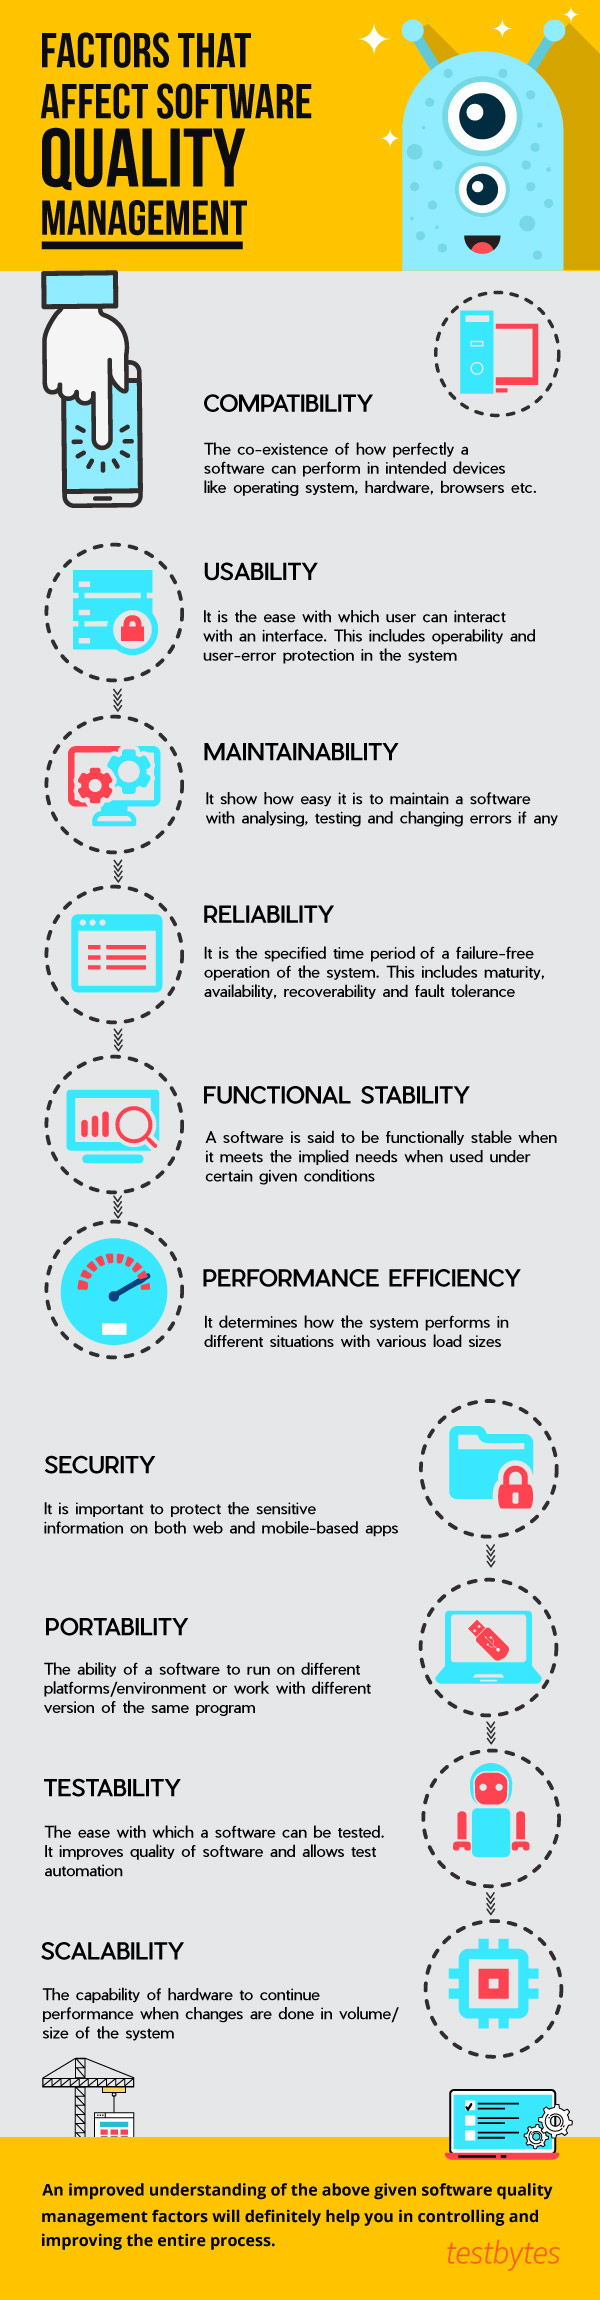 Factors-that-Affect-Software-Quality-Management-infograhic